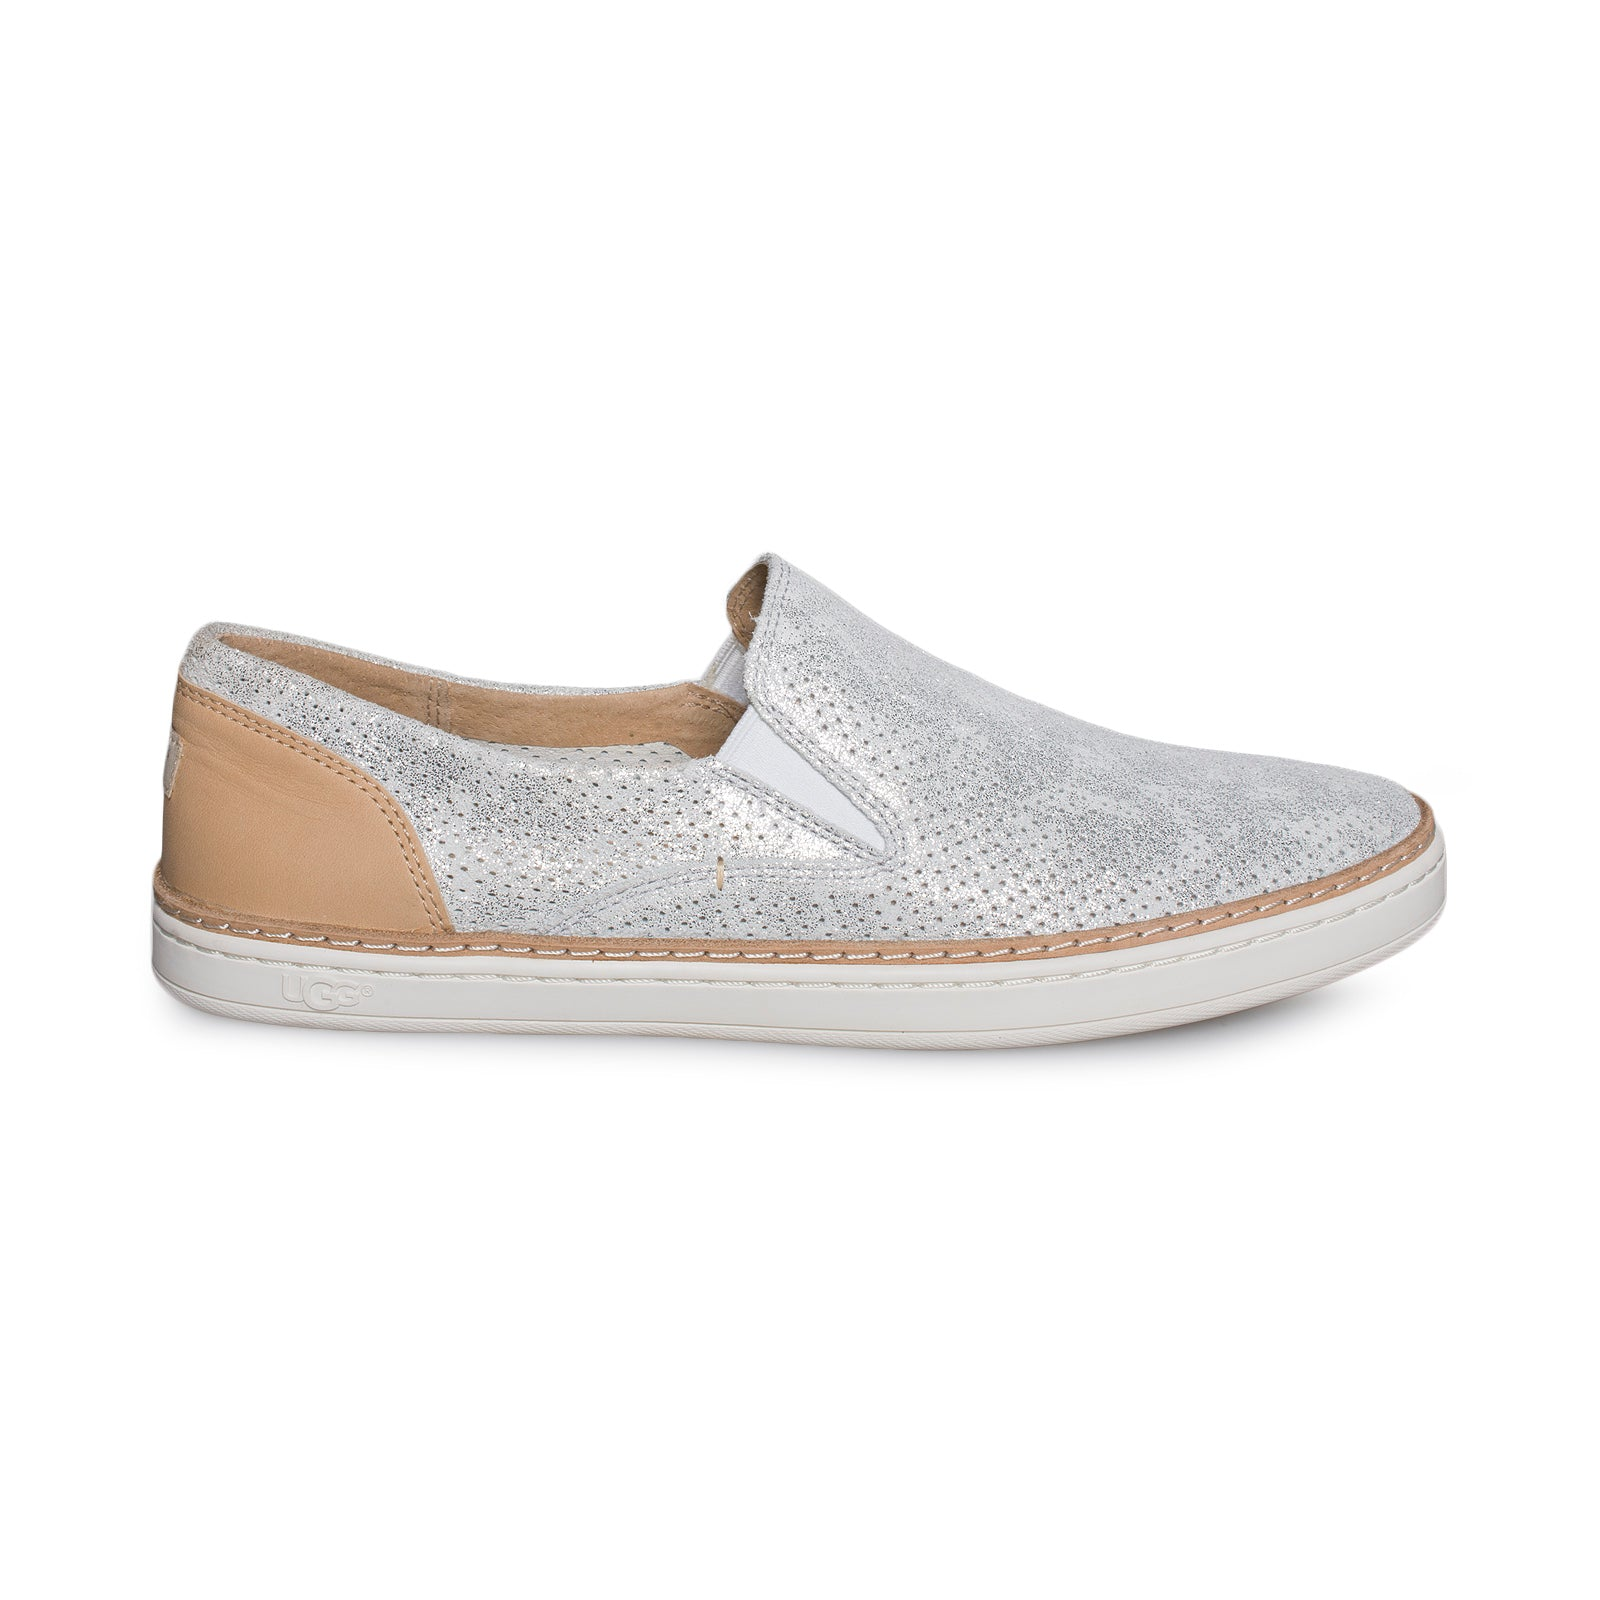 41196a85034 UGG Adley Perf Stardust Silver Shoes - Women's